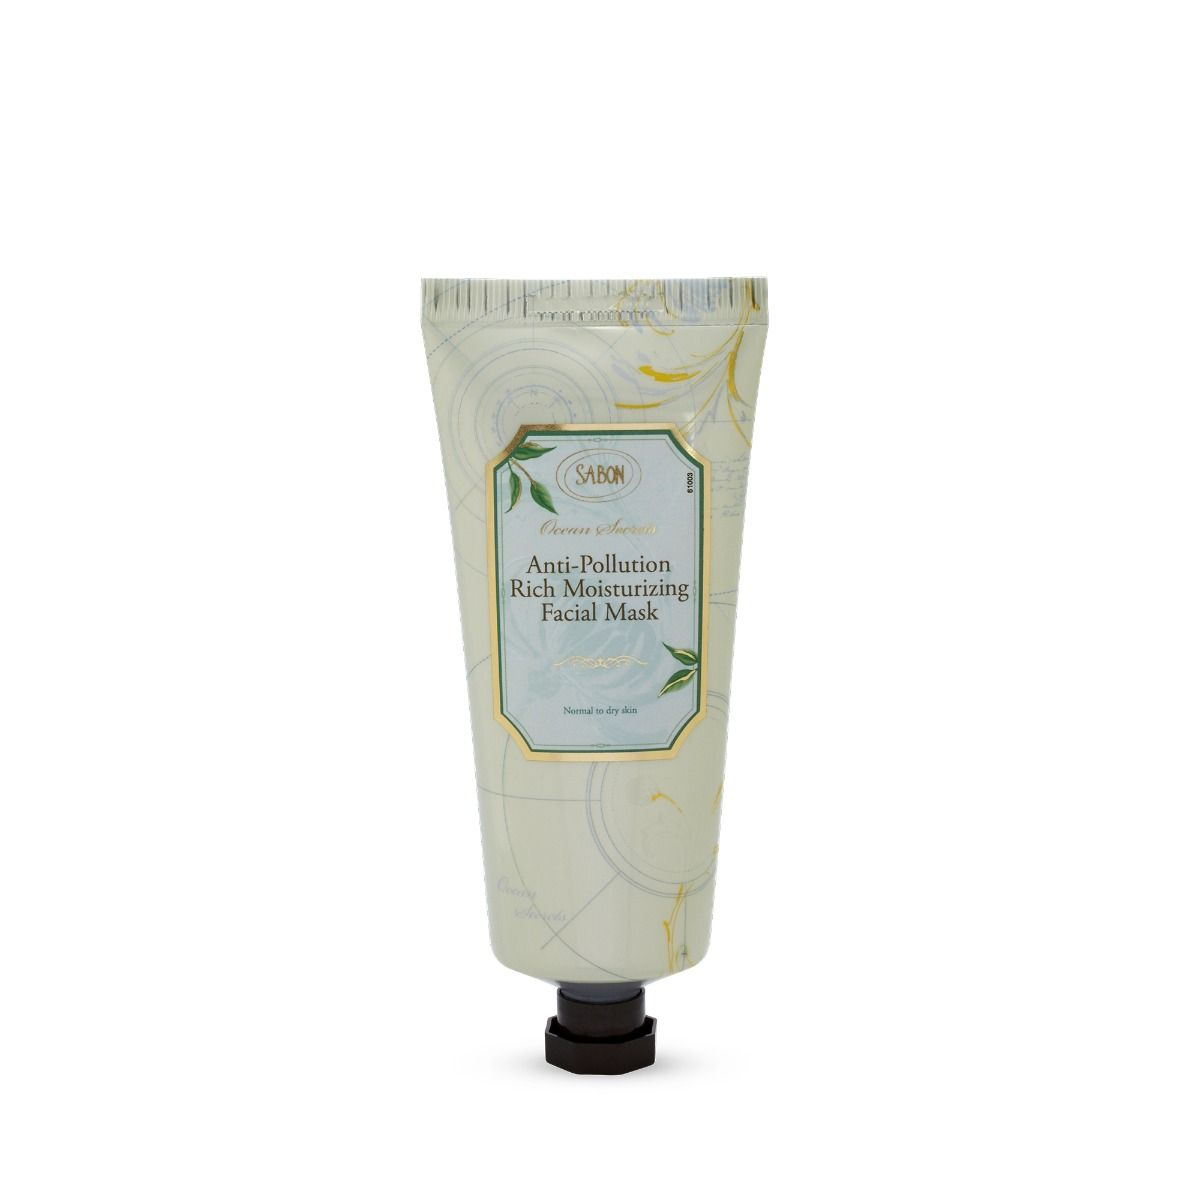 Rich Moisturizing Facial Mask